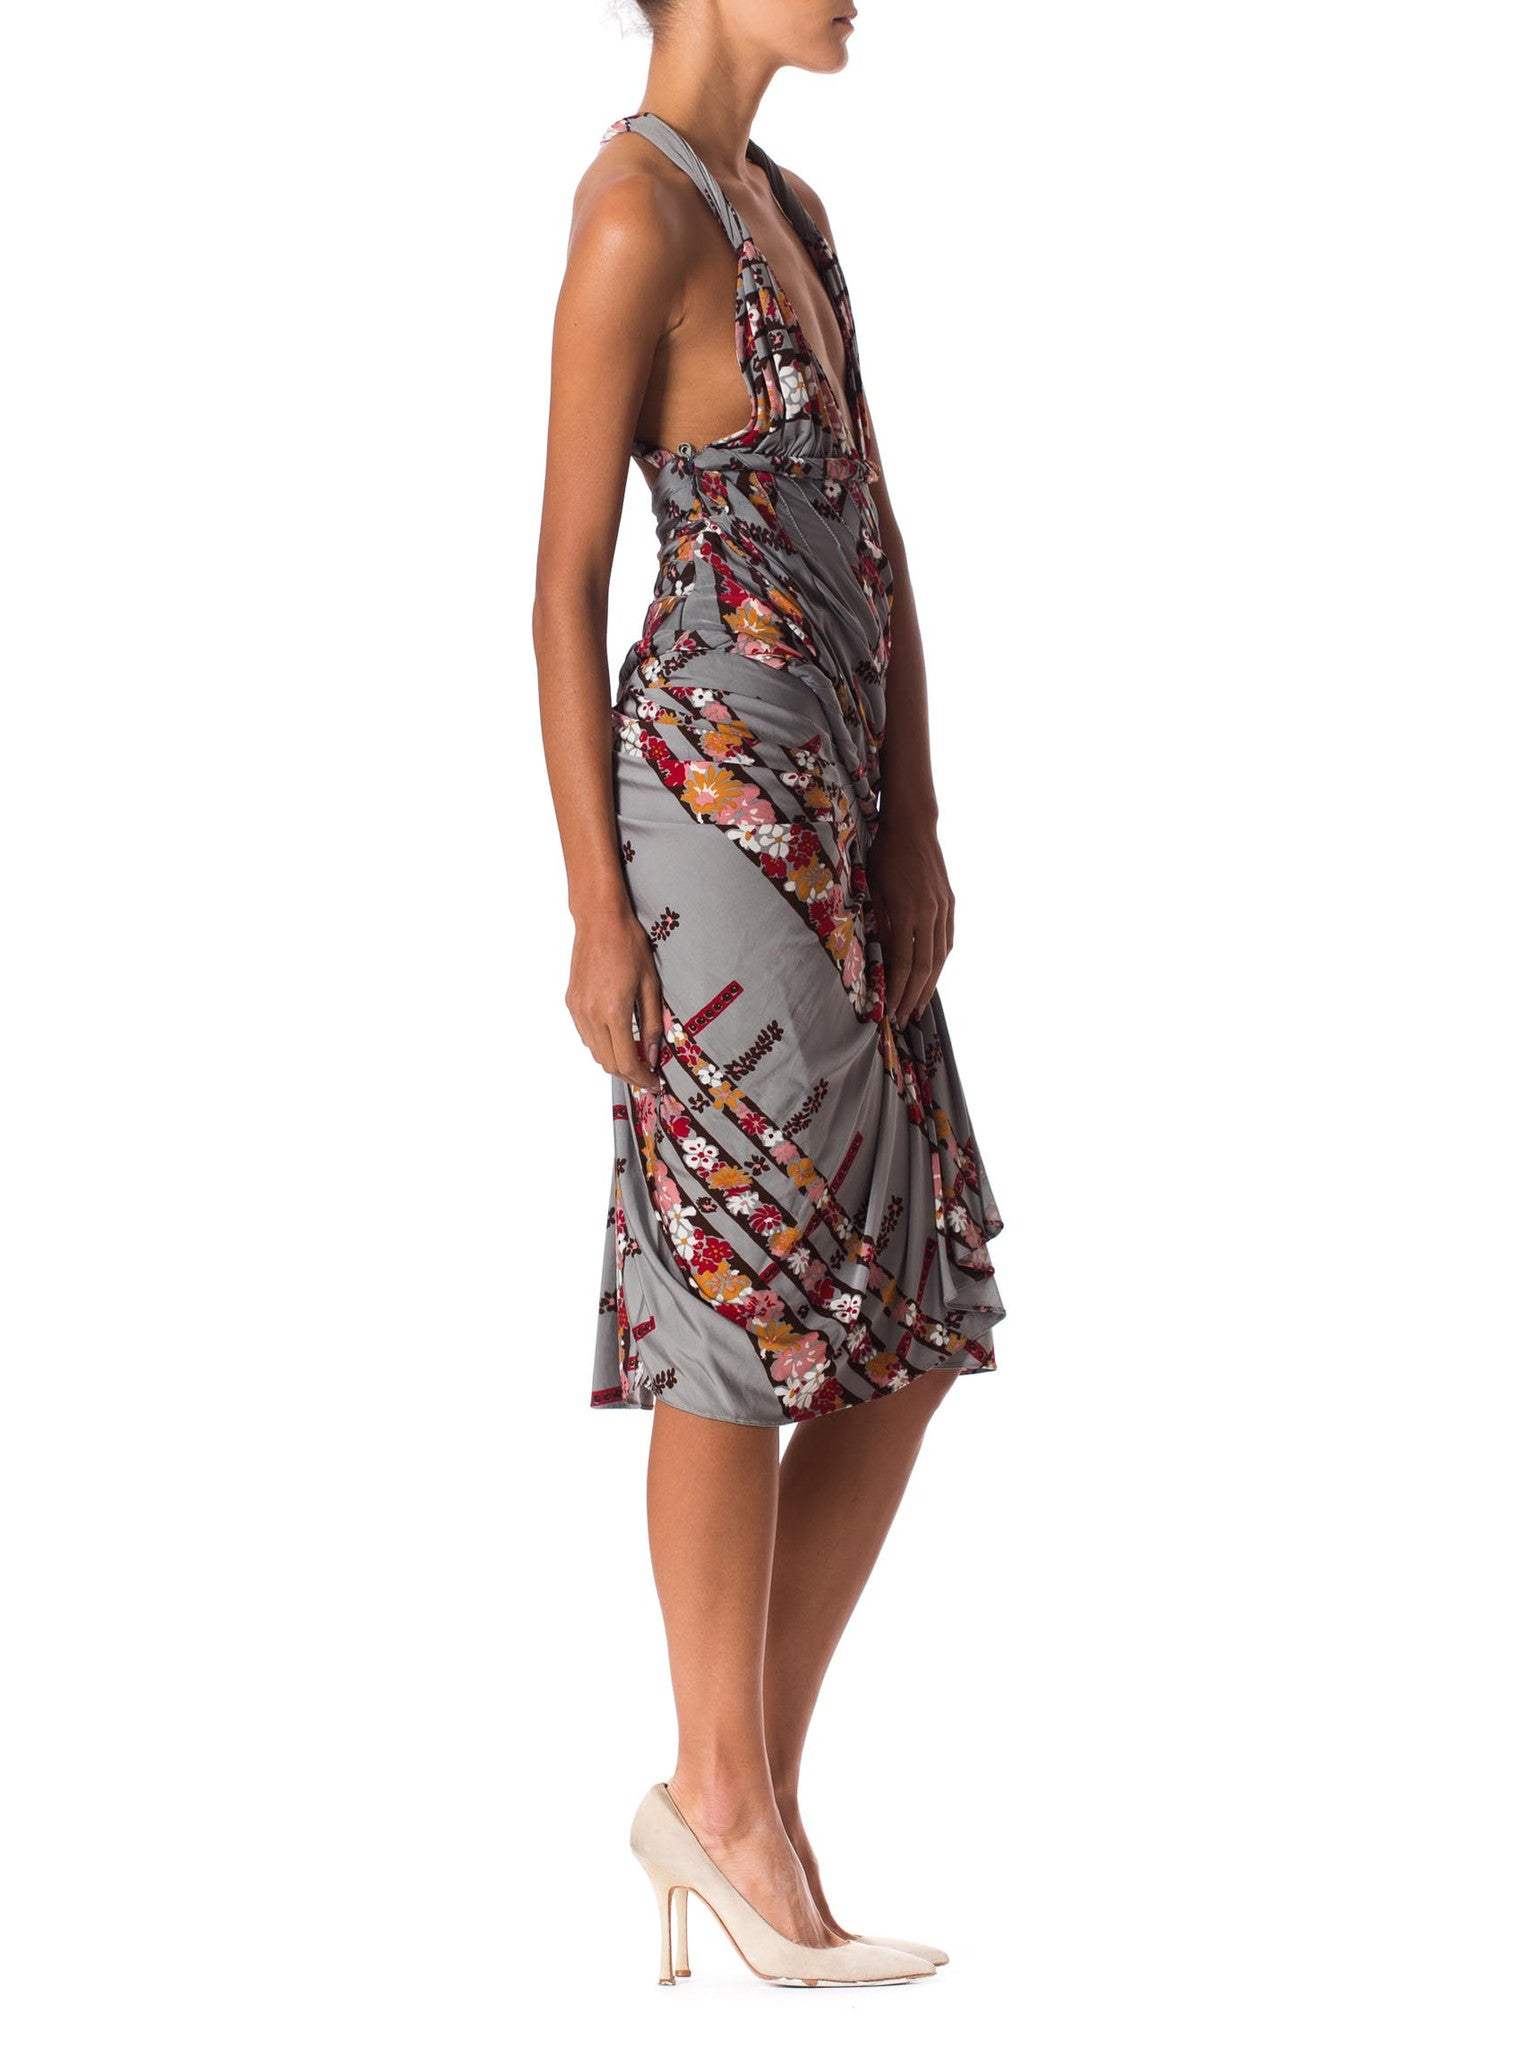 2000S Emanuel Ungaro Floral Rayon Blend Jersey Runway Sample Dress With Sexy Pleated Draping